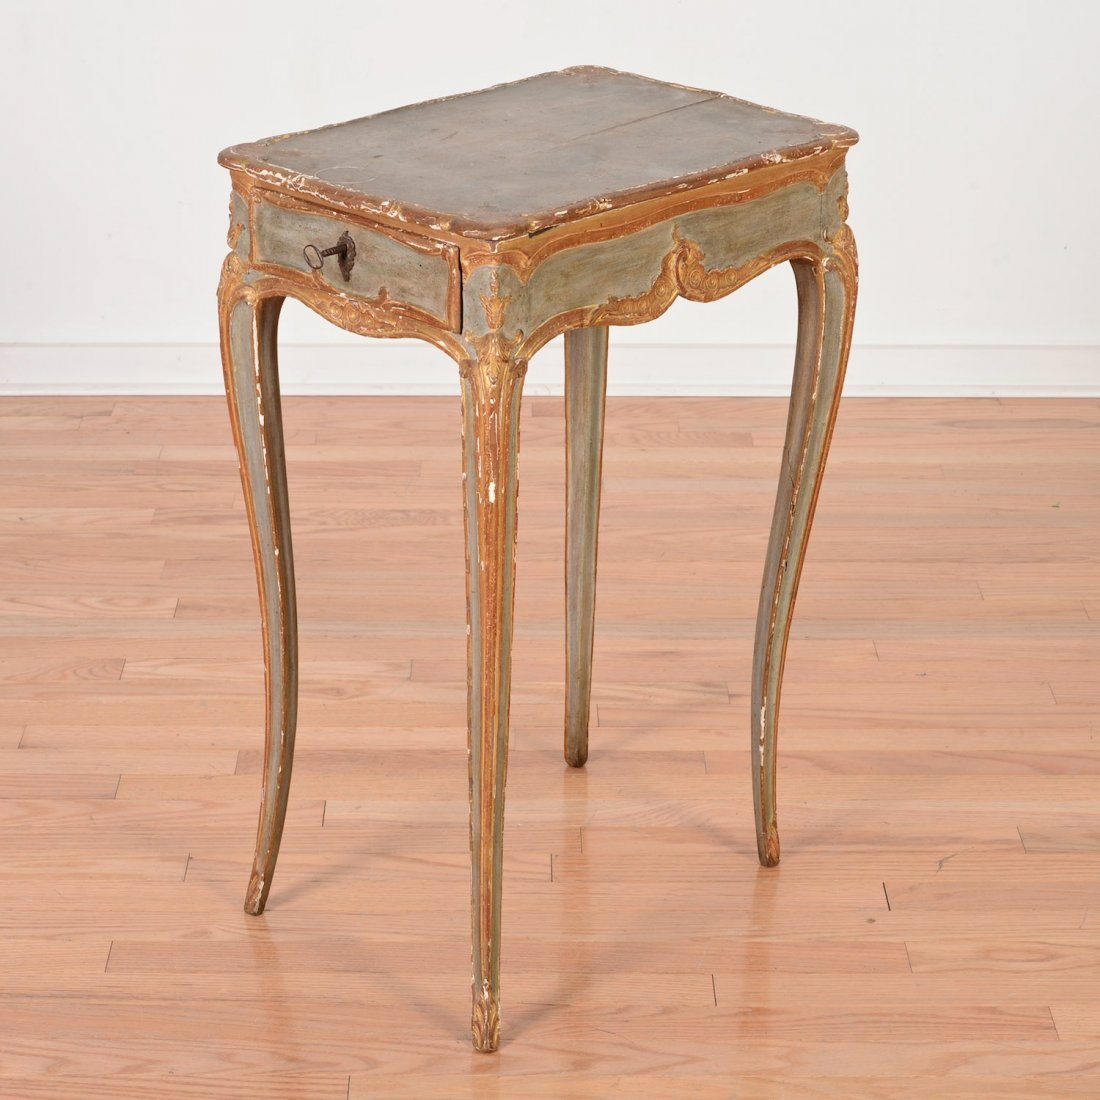 Nice Continental Rococo gray painted side table